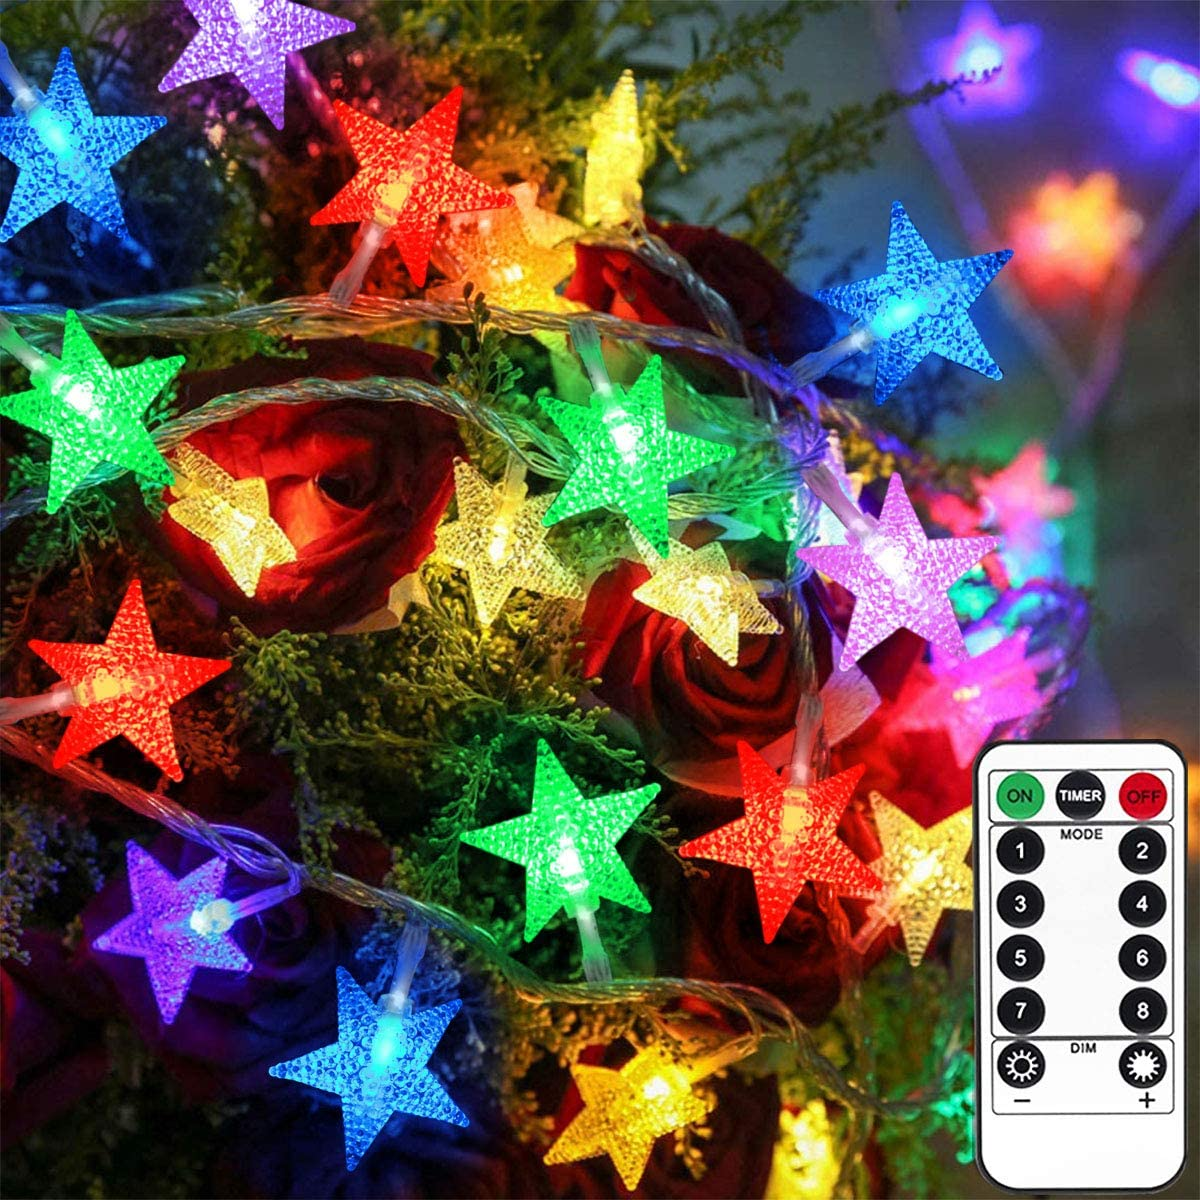 Homeleo 12.12 Ft 12 Led Color Changing String Lights, Battery Powered Star  Fairy Lights with Timer Remote, Indoor Outdoor Christmas Lights for Bedroom  ...